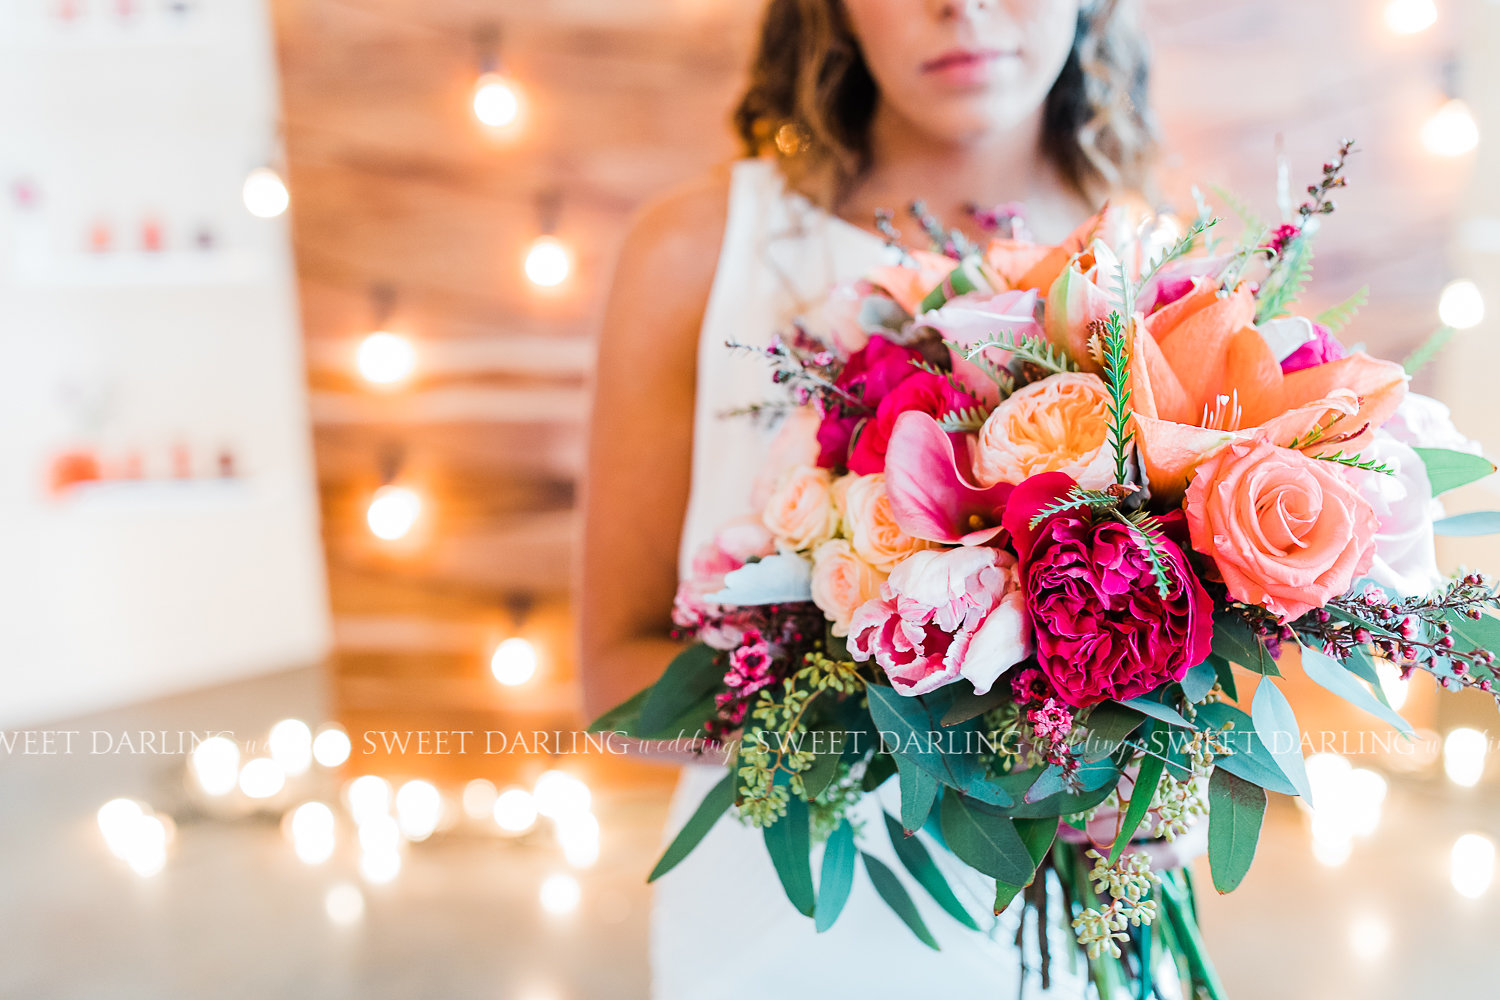 One of my all time favorite bouquets, this stunner included several varieties of garden roses, standard roses, coral amaryllis, light pink parrot tulips, calla lilies and mixed foliage and fillers.